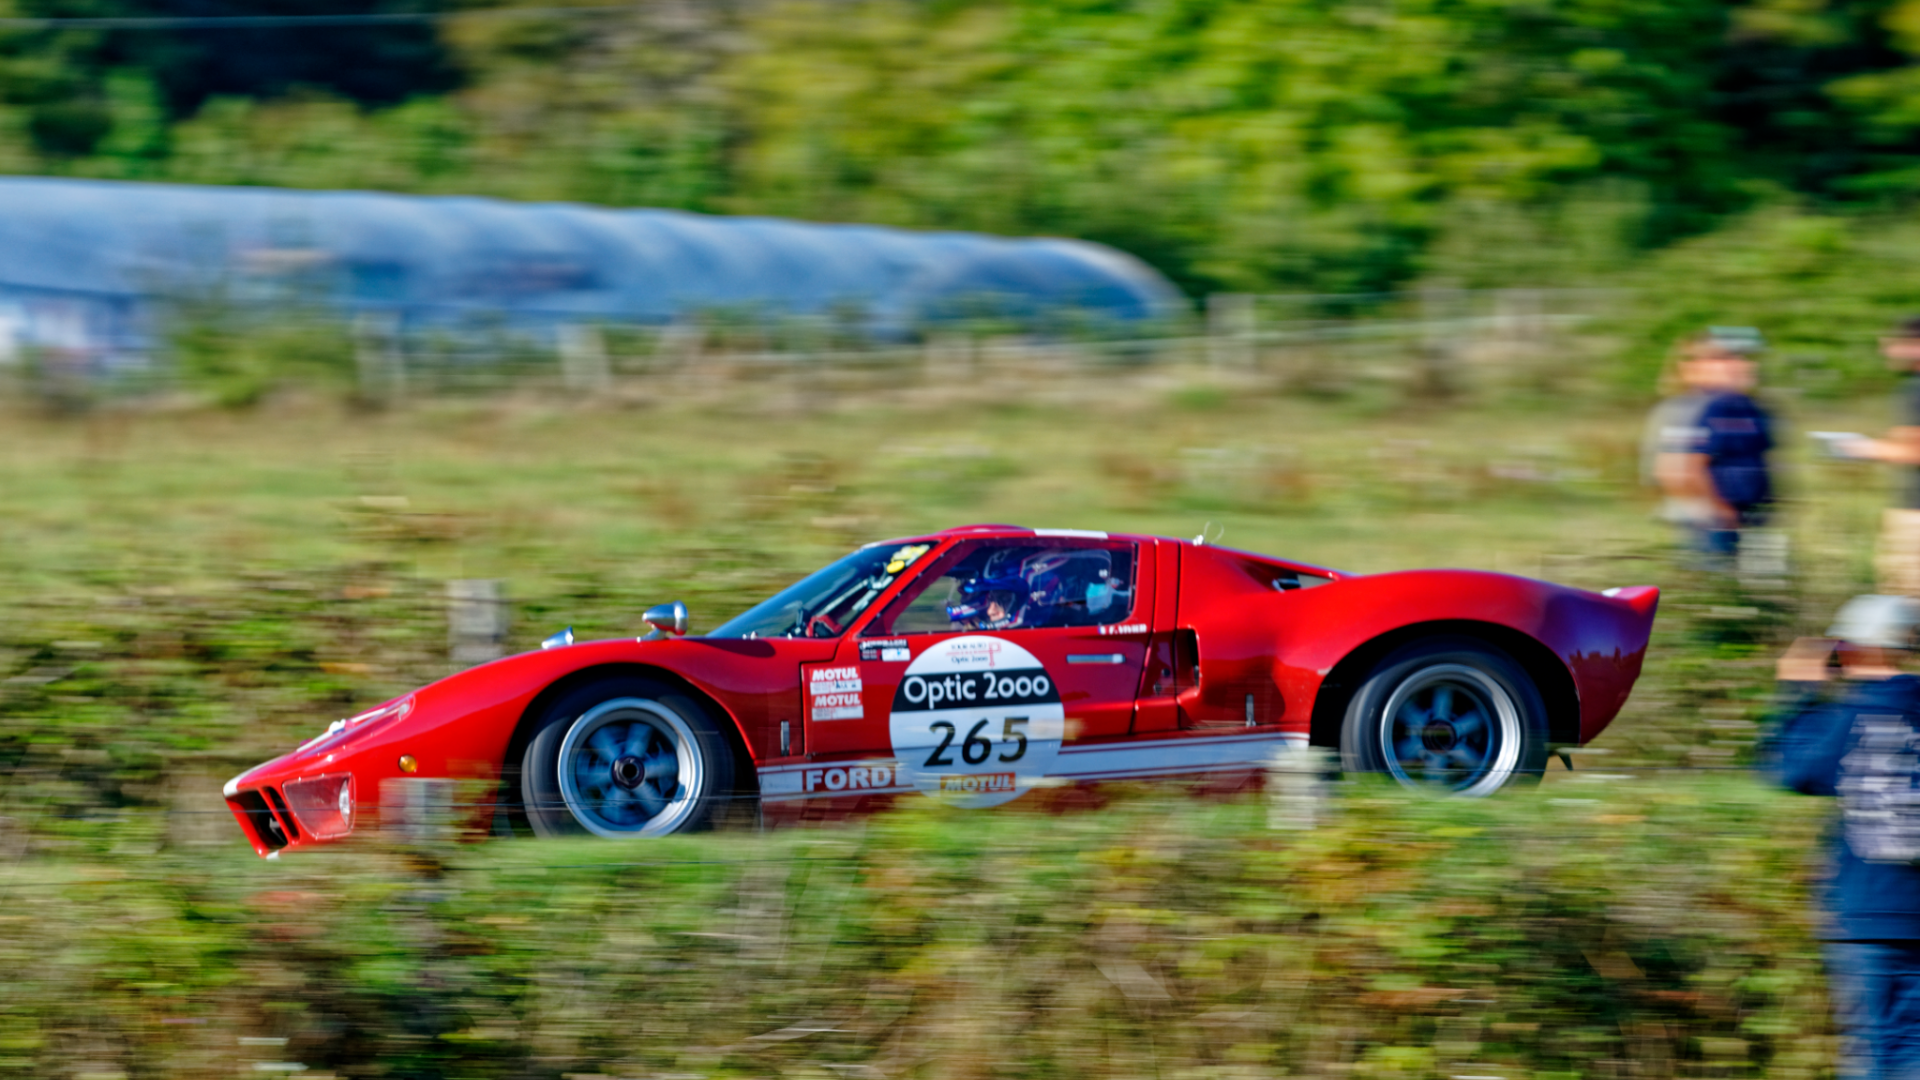 Gipimotor consolidates its 3rd place in VHC on the Tour Auto Optic 2000 · Gipimotor